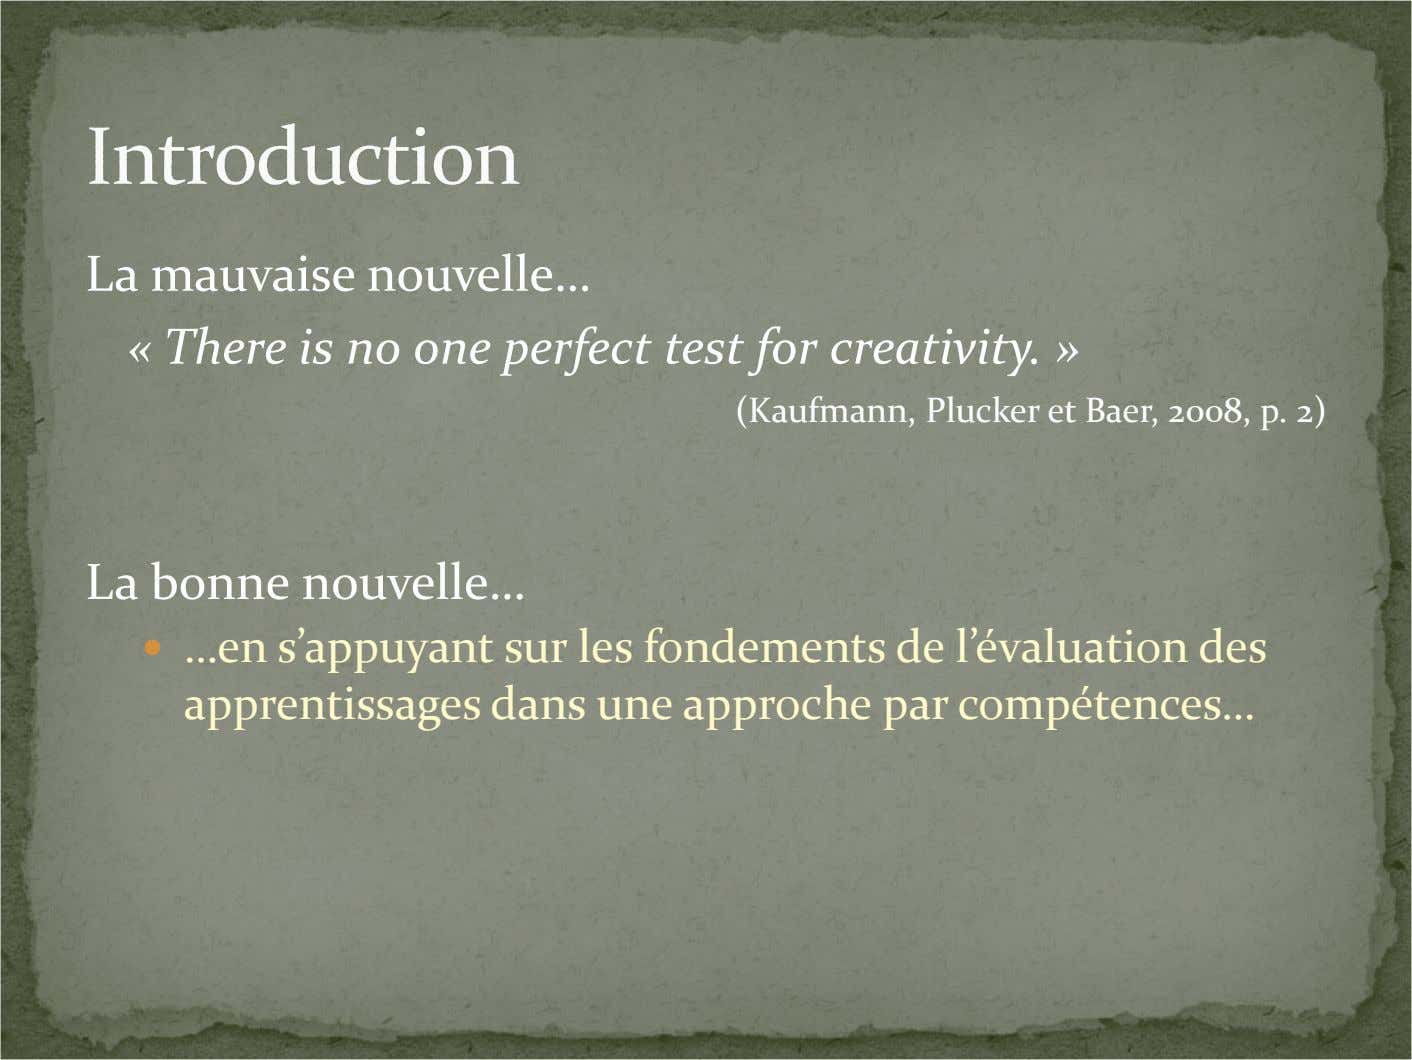 La mauvaise nouvelle… « There is no one perfect test for creativity. » (Kaufmann, Plucker